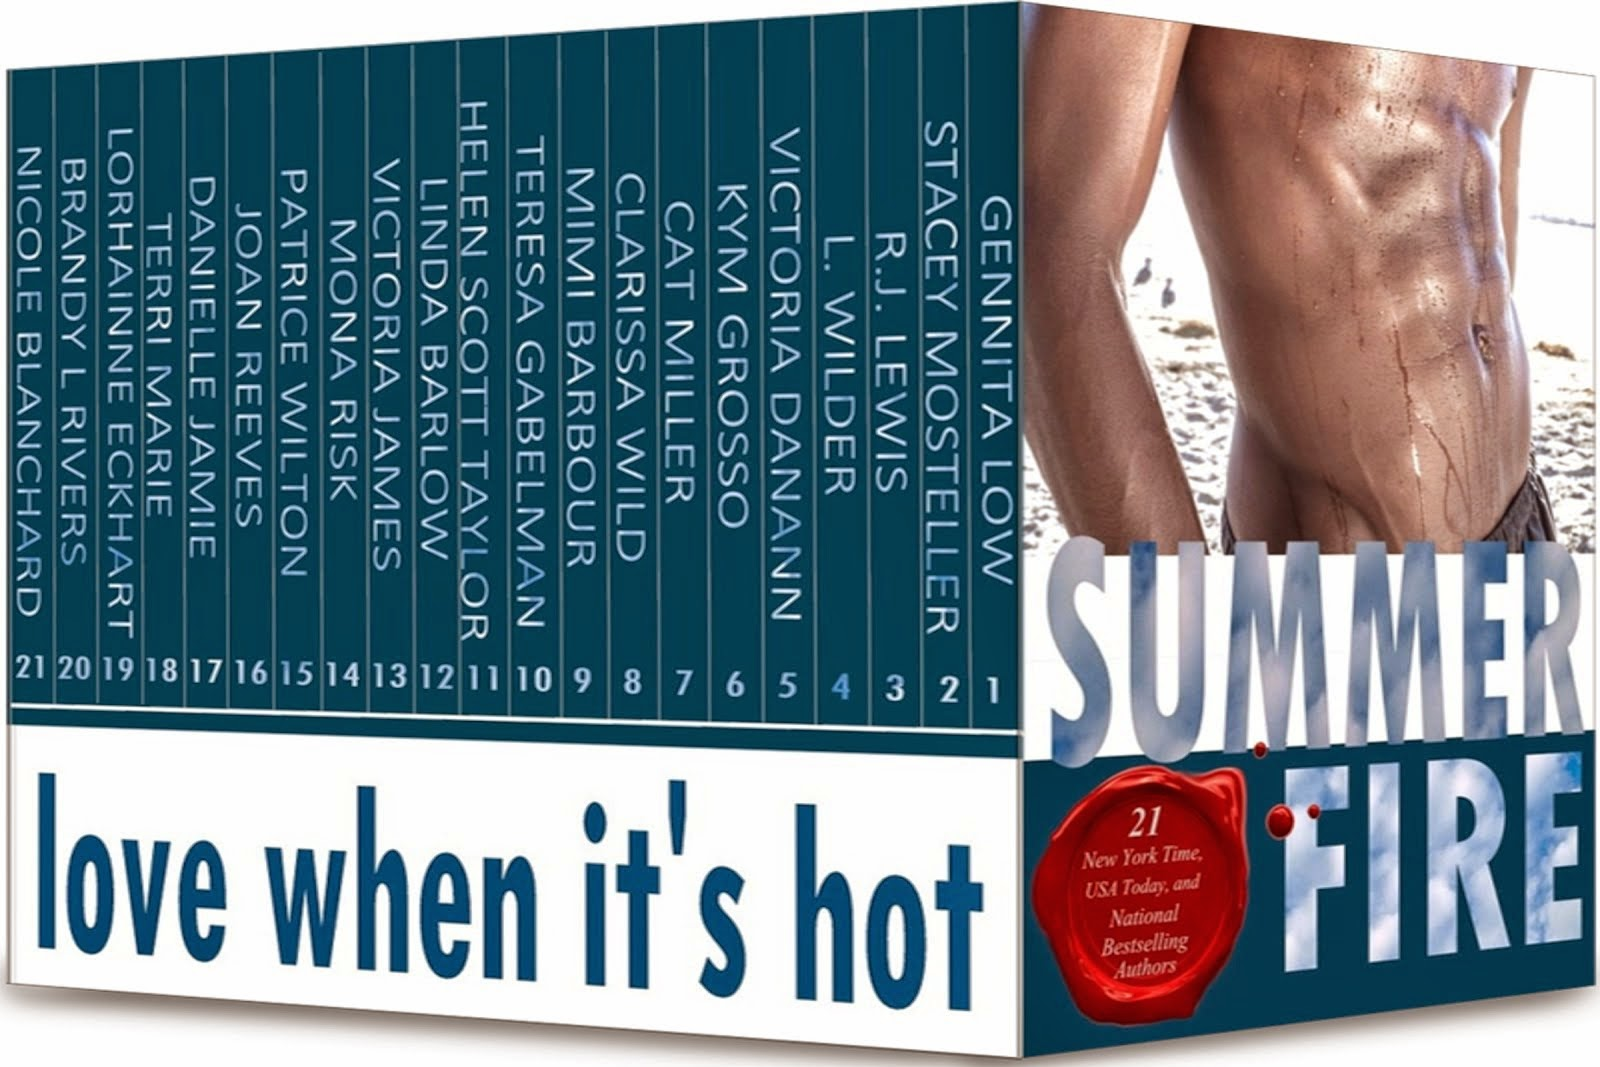 21 Bestselling Authors for $0.99! Preorder now!